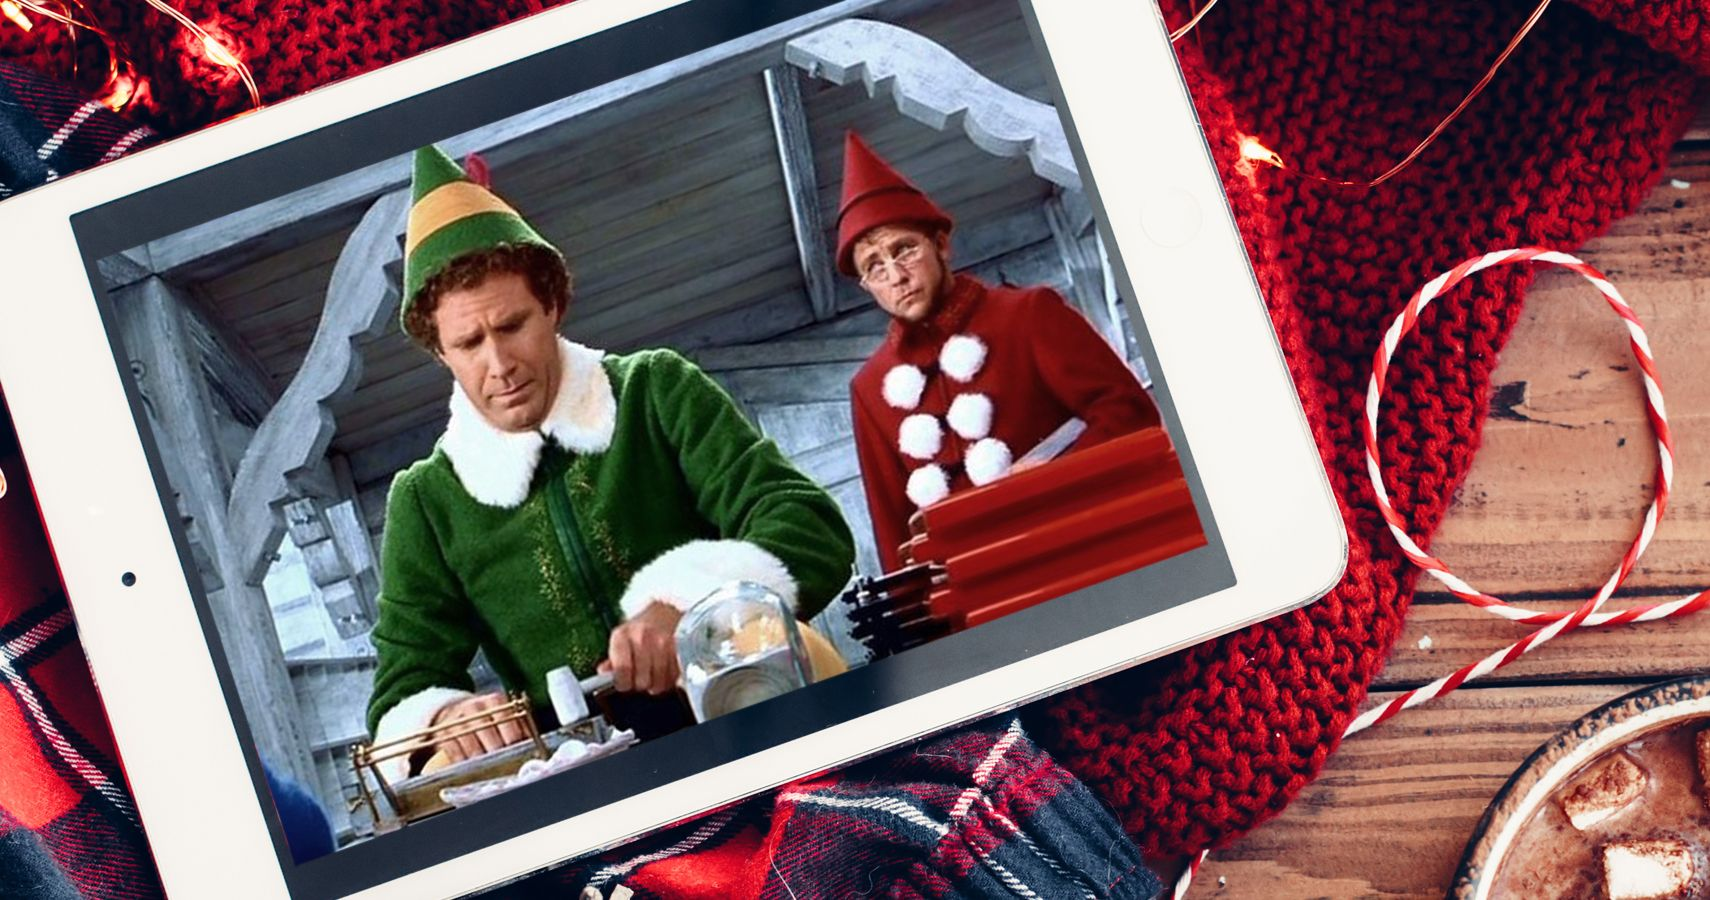 12 Best Christmas Movies That Are A Must-Watch For Any Family